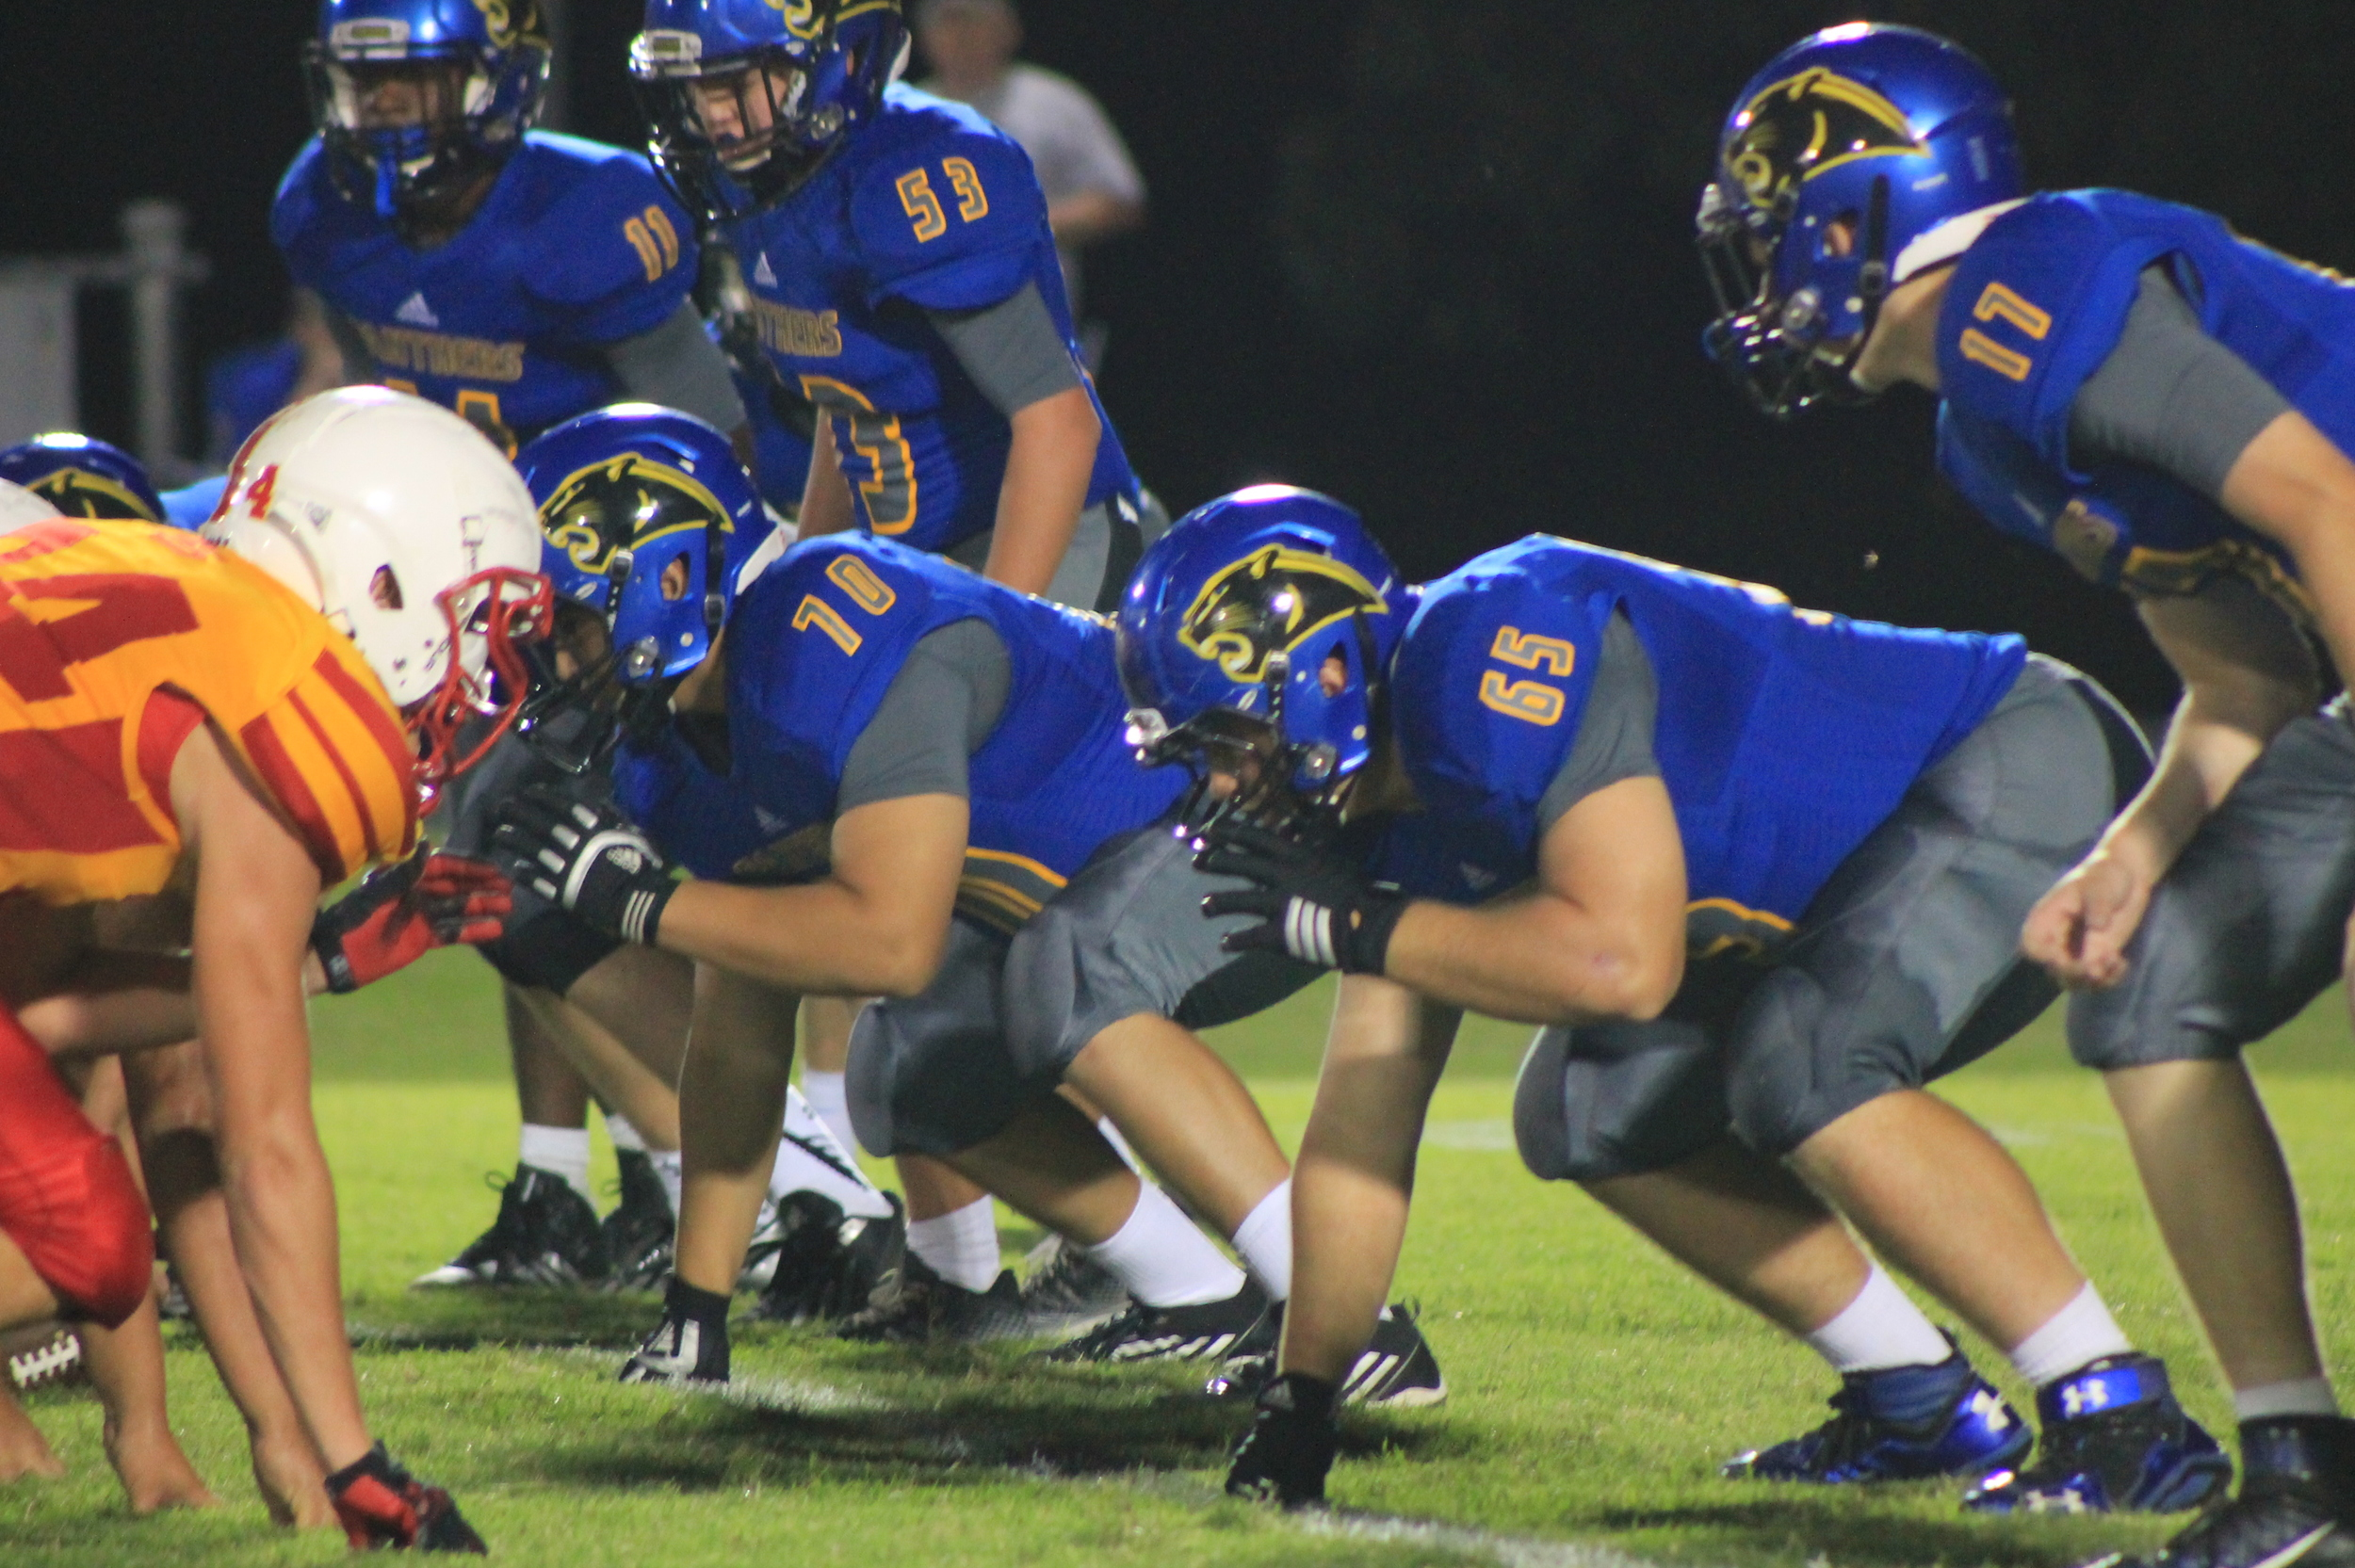 (Photo by Adam Routon) Defensive Line: Stephon Bass (11), Nick Noble (53), Samuel Flores (70), Brandon Halliday (65) and Tyler Biard (17)